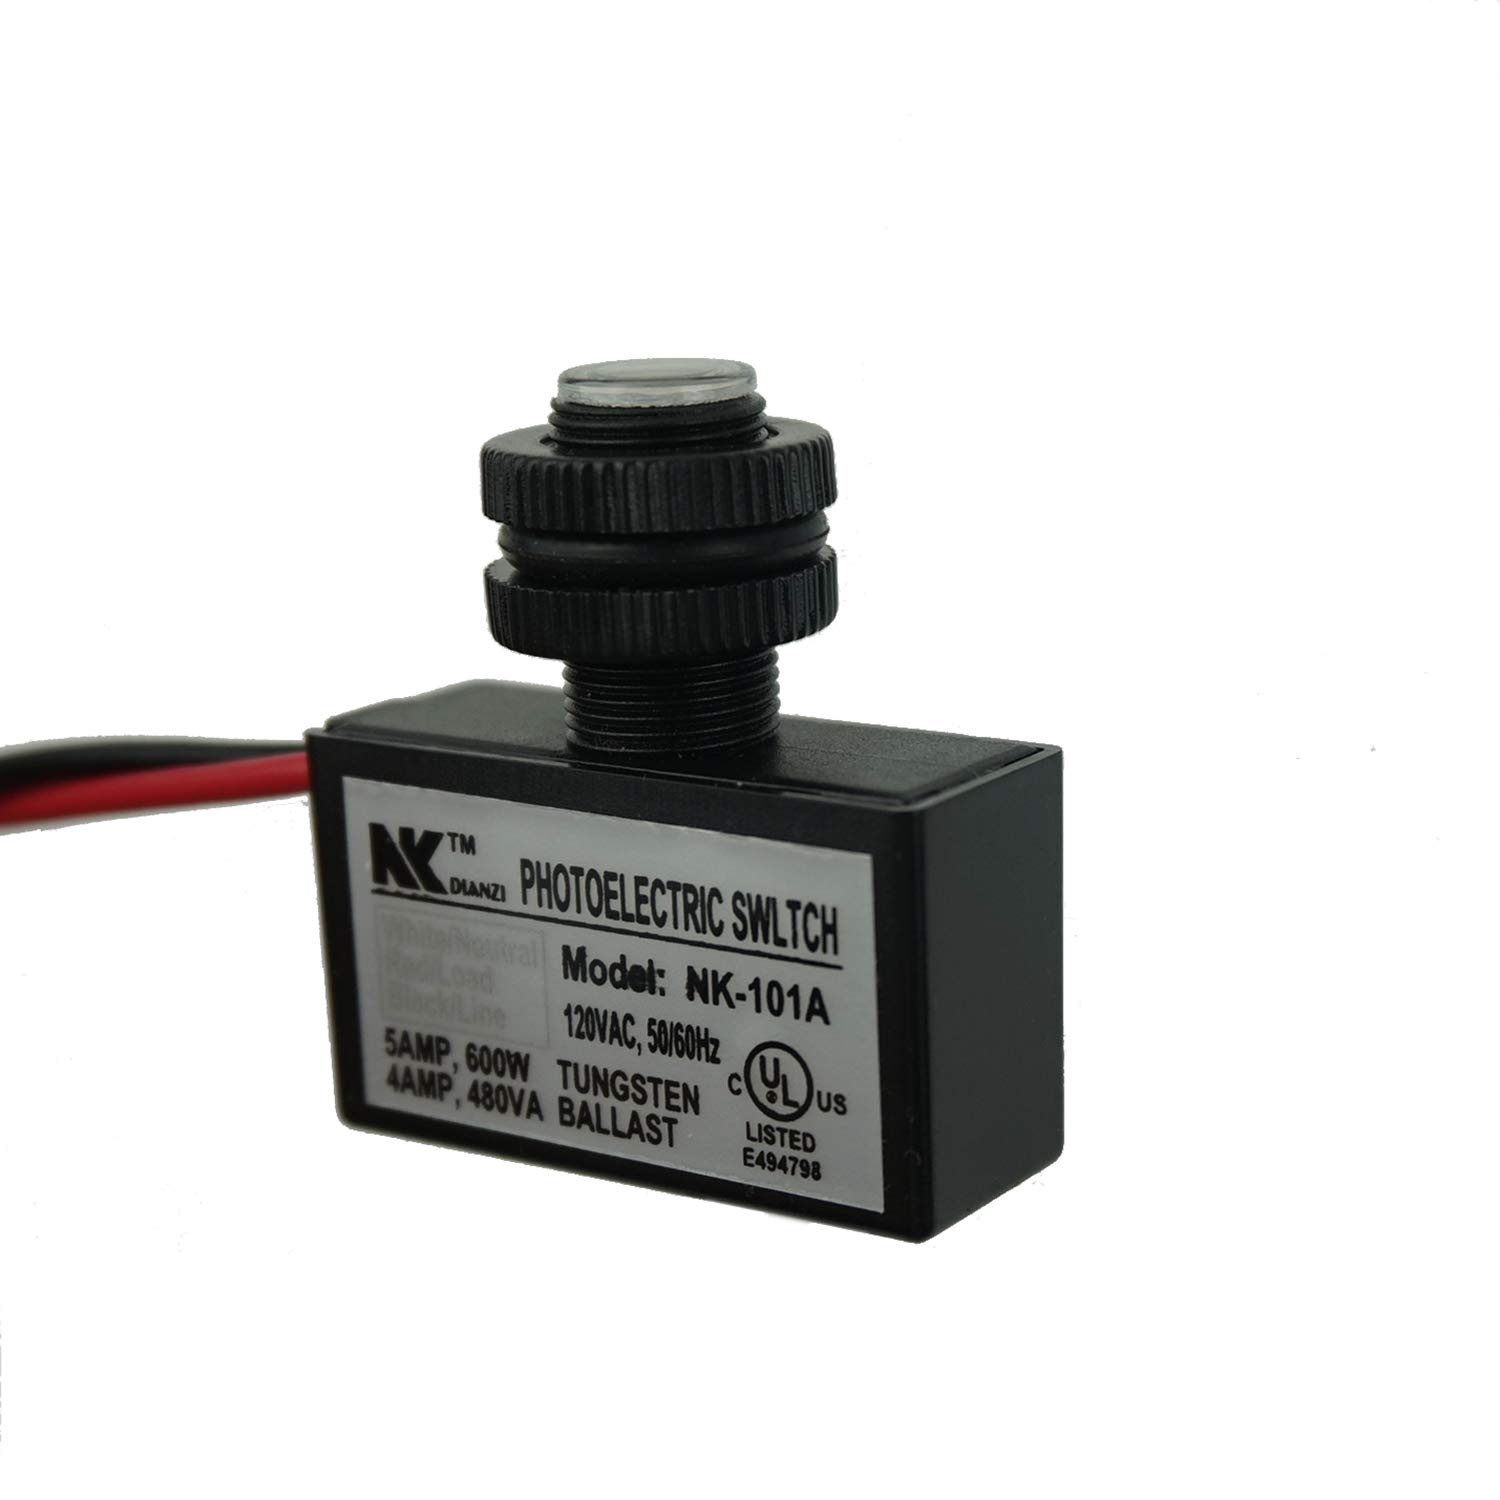 Proshopping AC 120V Outdoor Sensor Photoelectric Switch